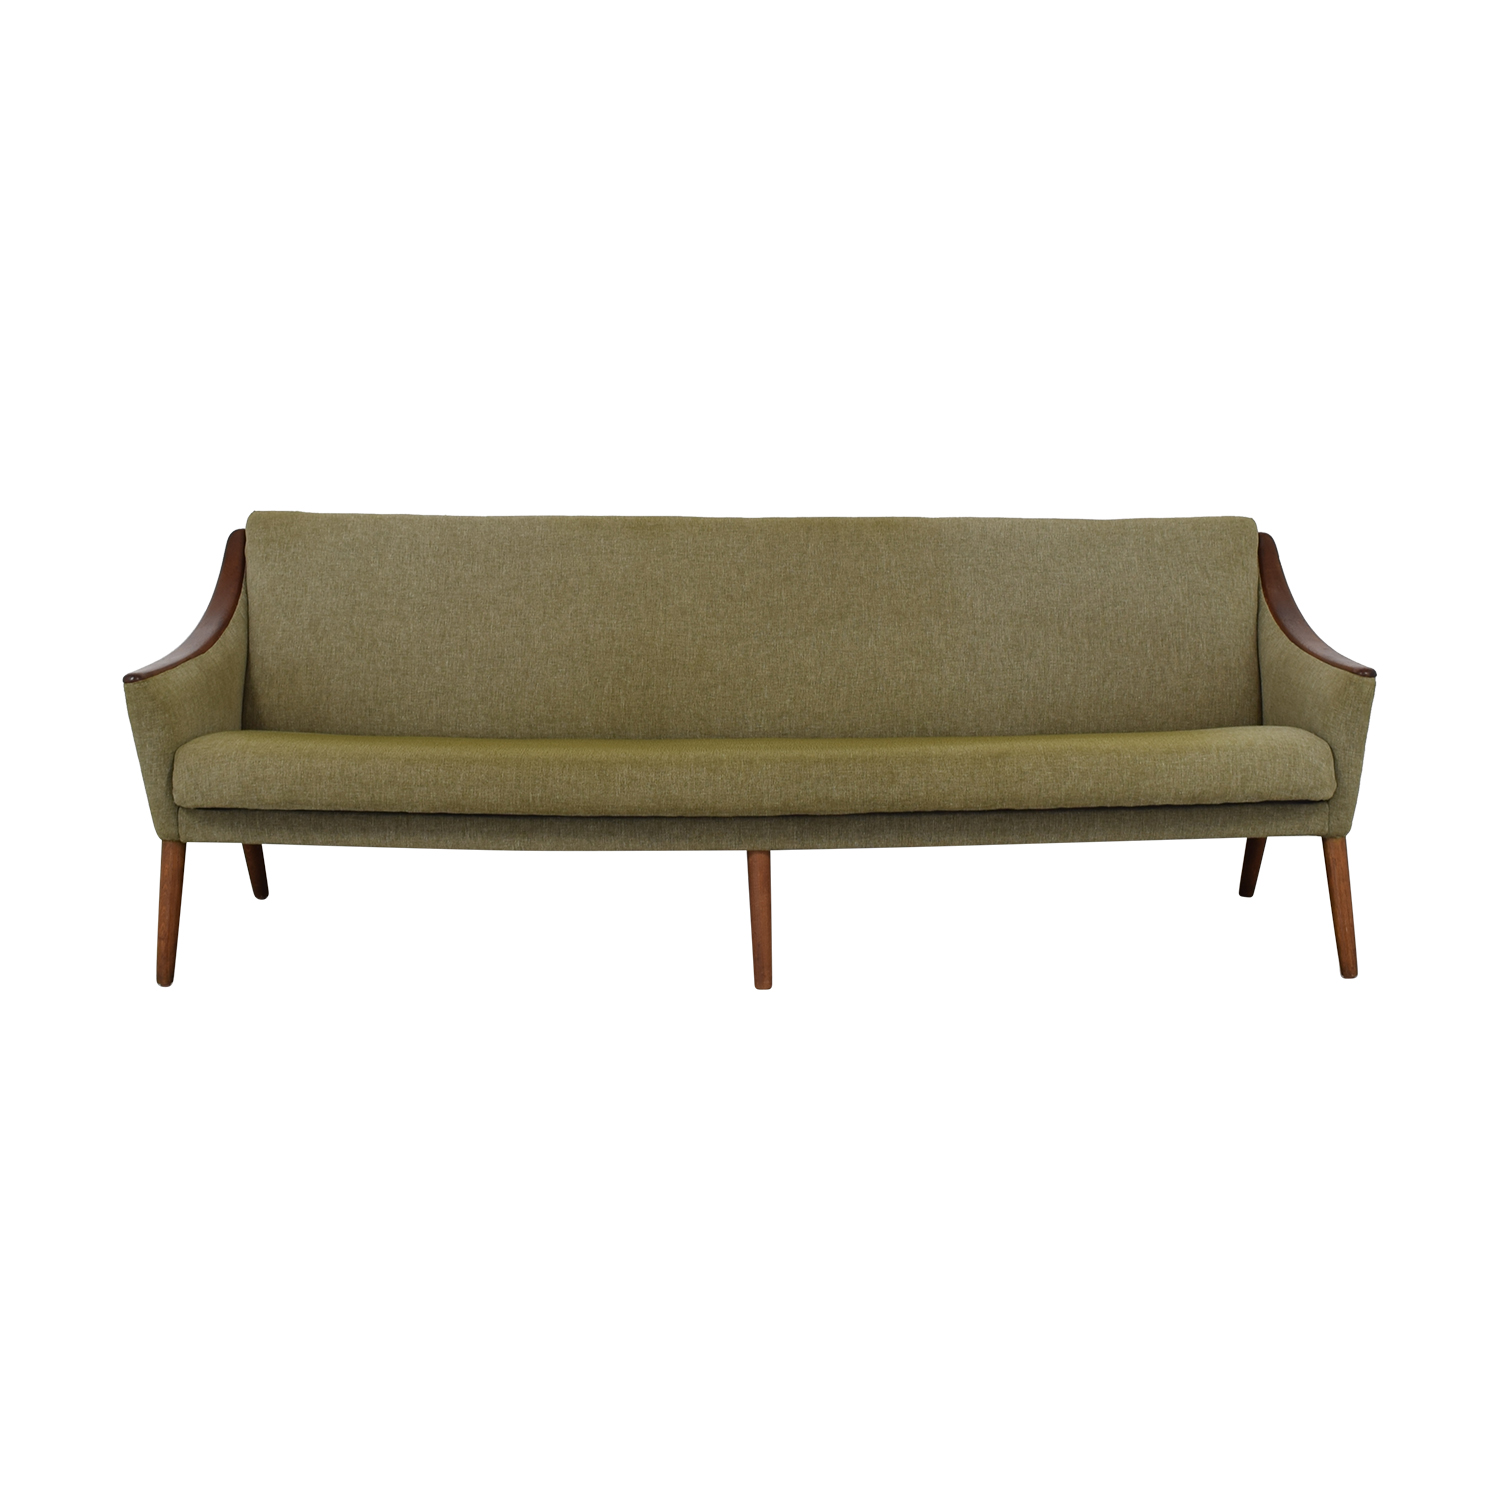 Nanna Ditzel Mid Century Teak Sculpted Arm Sofa sale